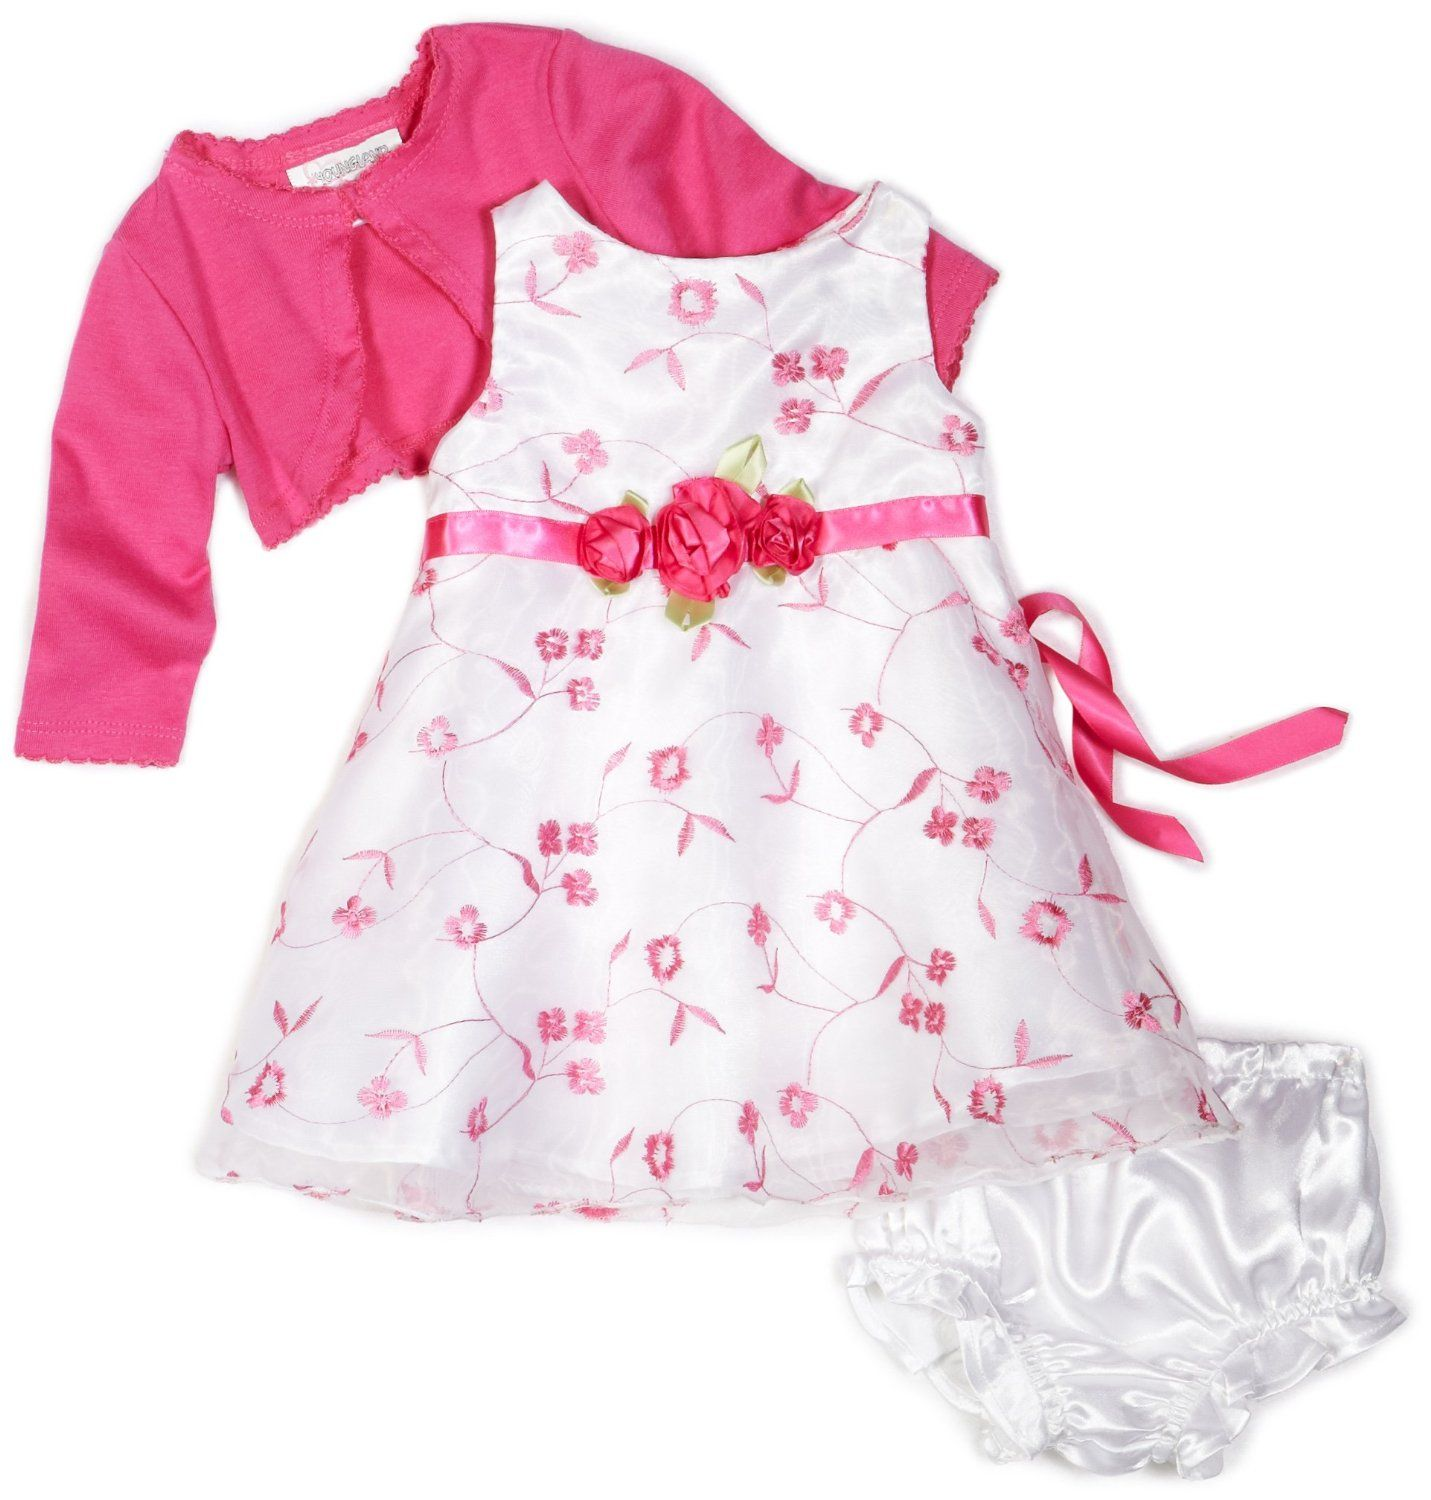 Toddler Girl Fashion Clothing Beautiful Baby Girl Dress